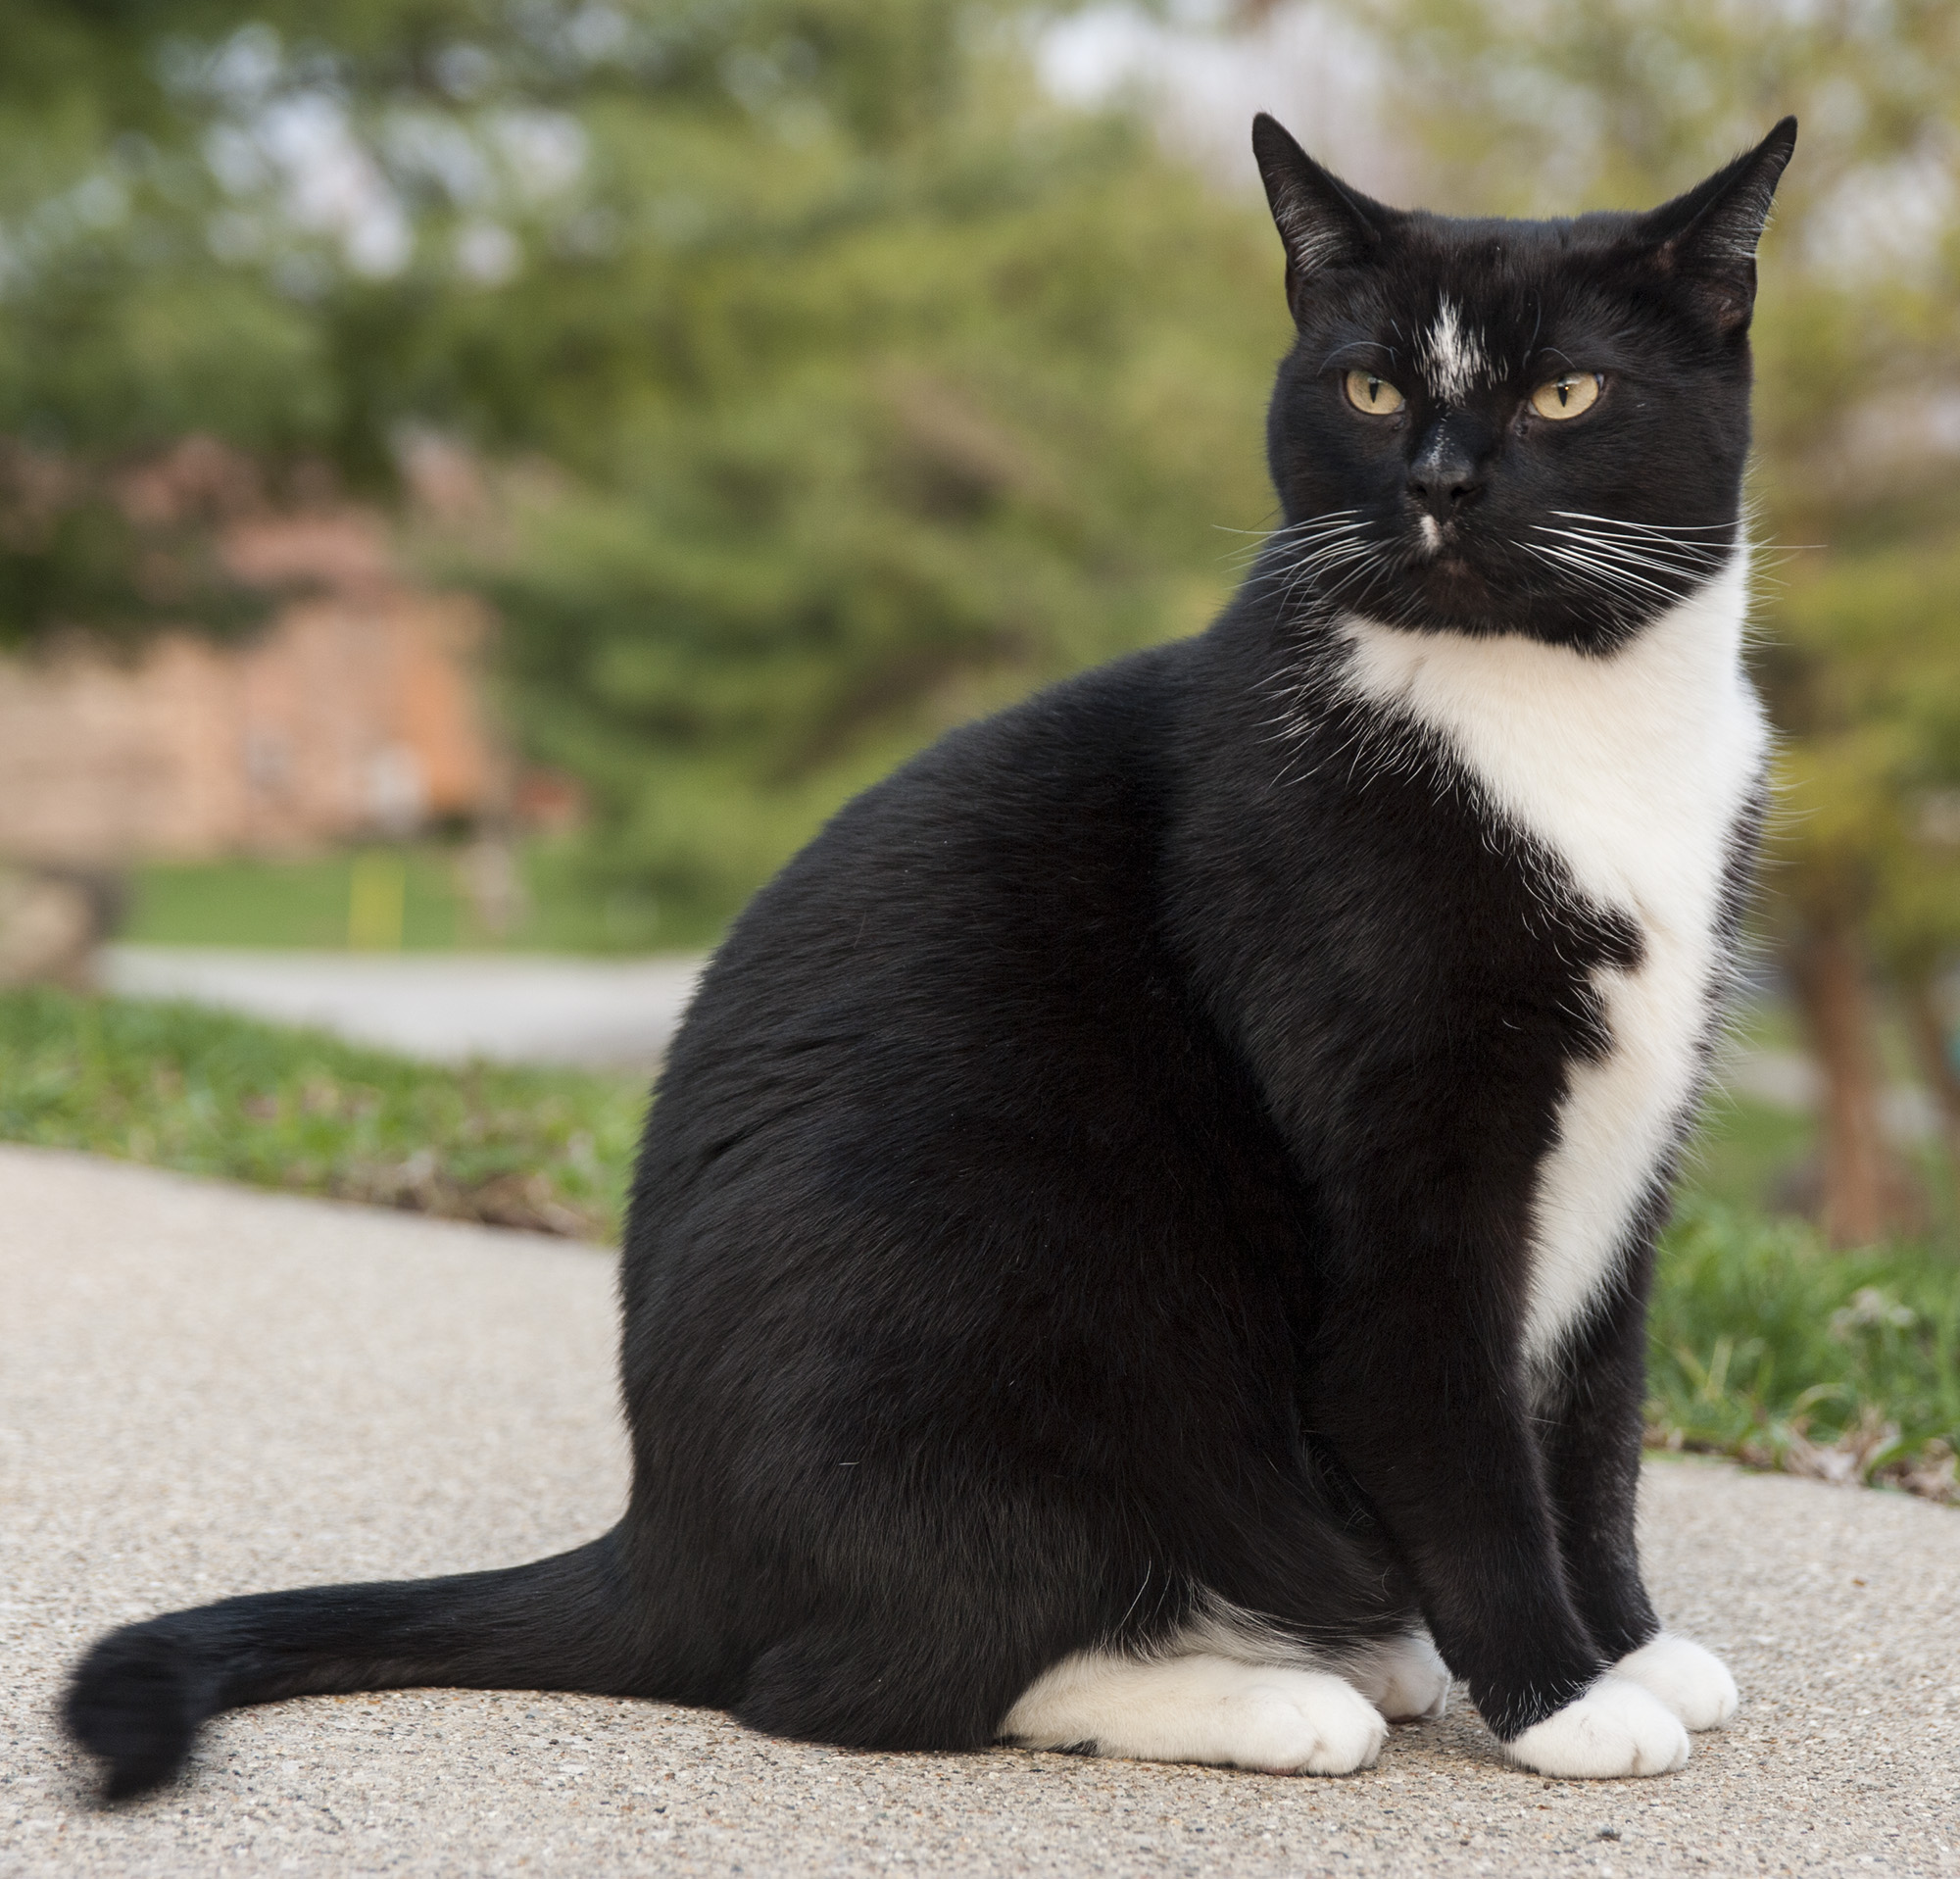 Color of cats fur - A Tuxedo Cat